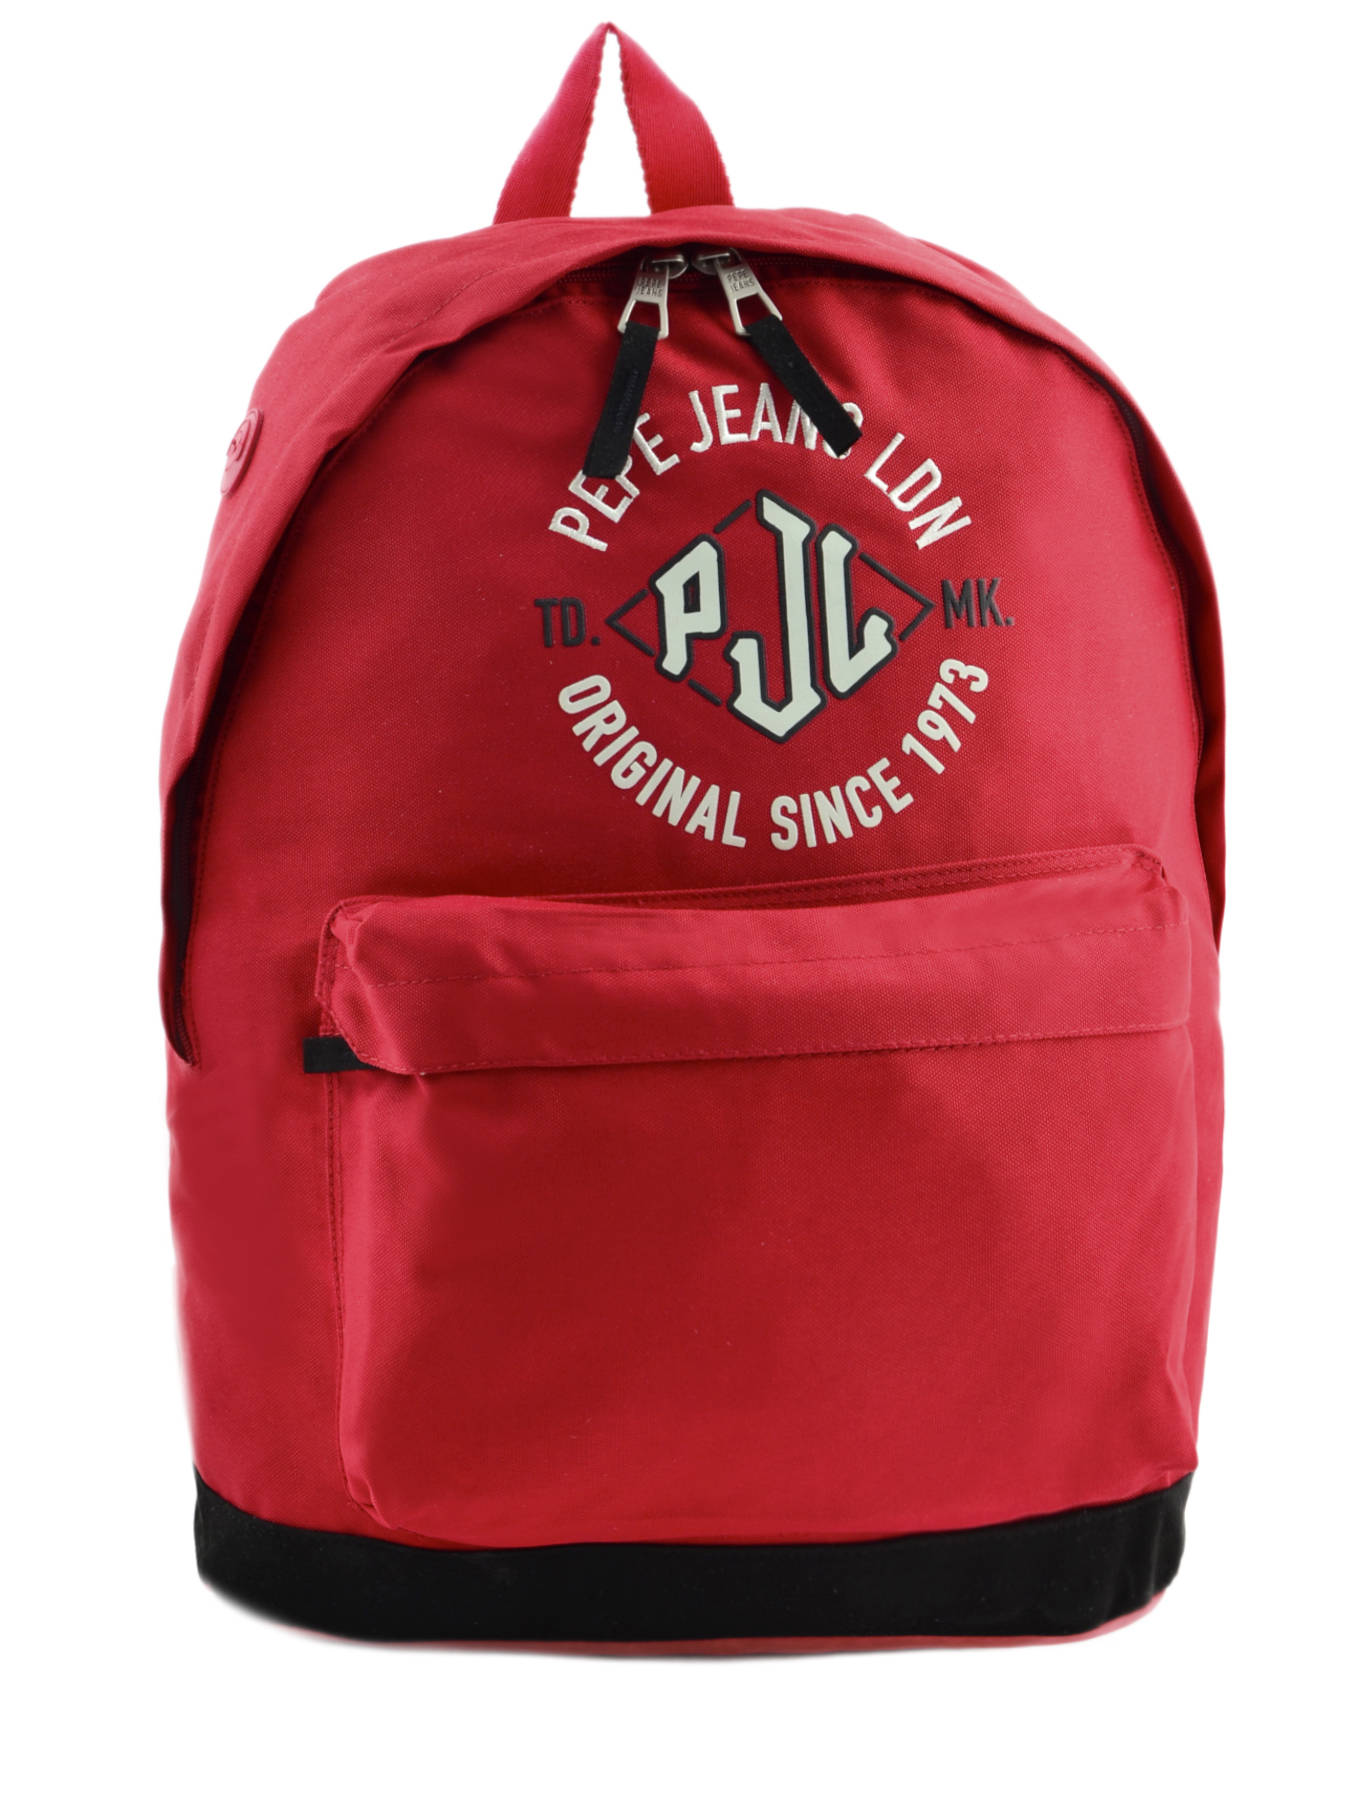 3ebc32ae940 ... Backpack 1 Compartment Pepe jeans Red jackson 63923 ...